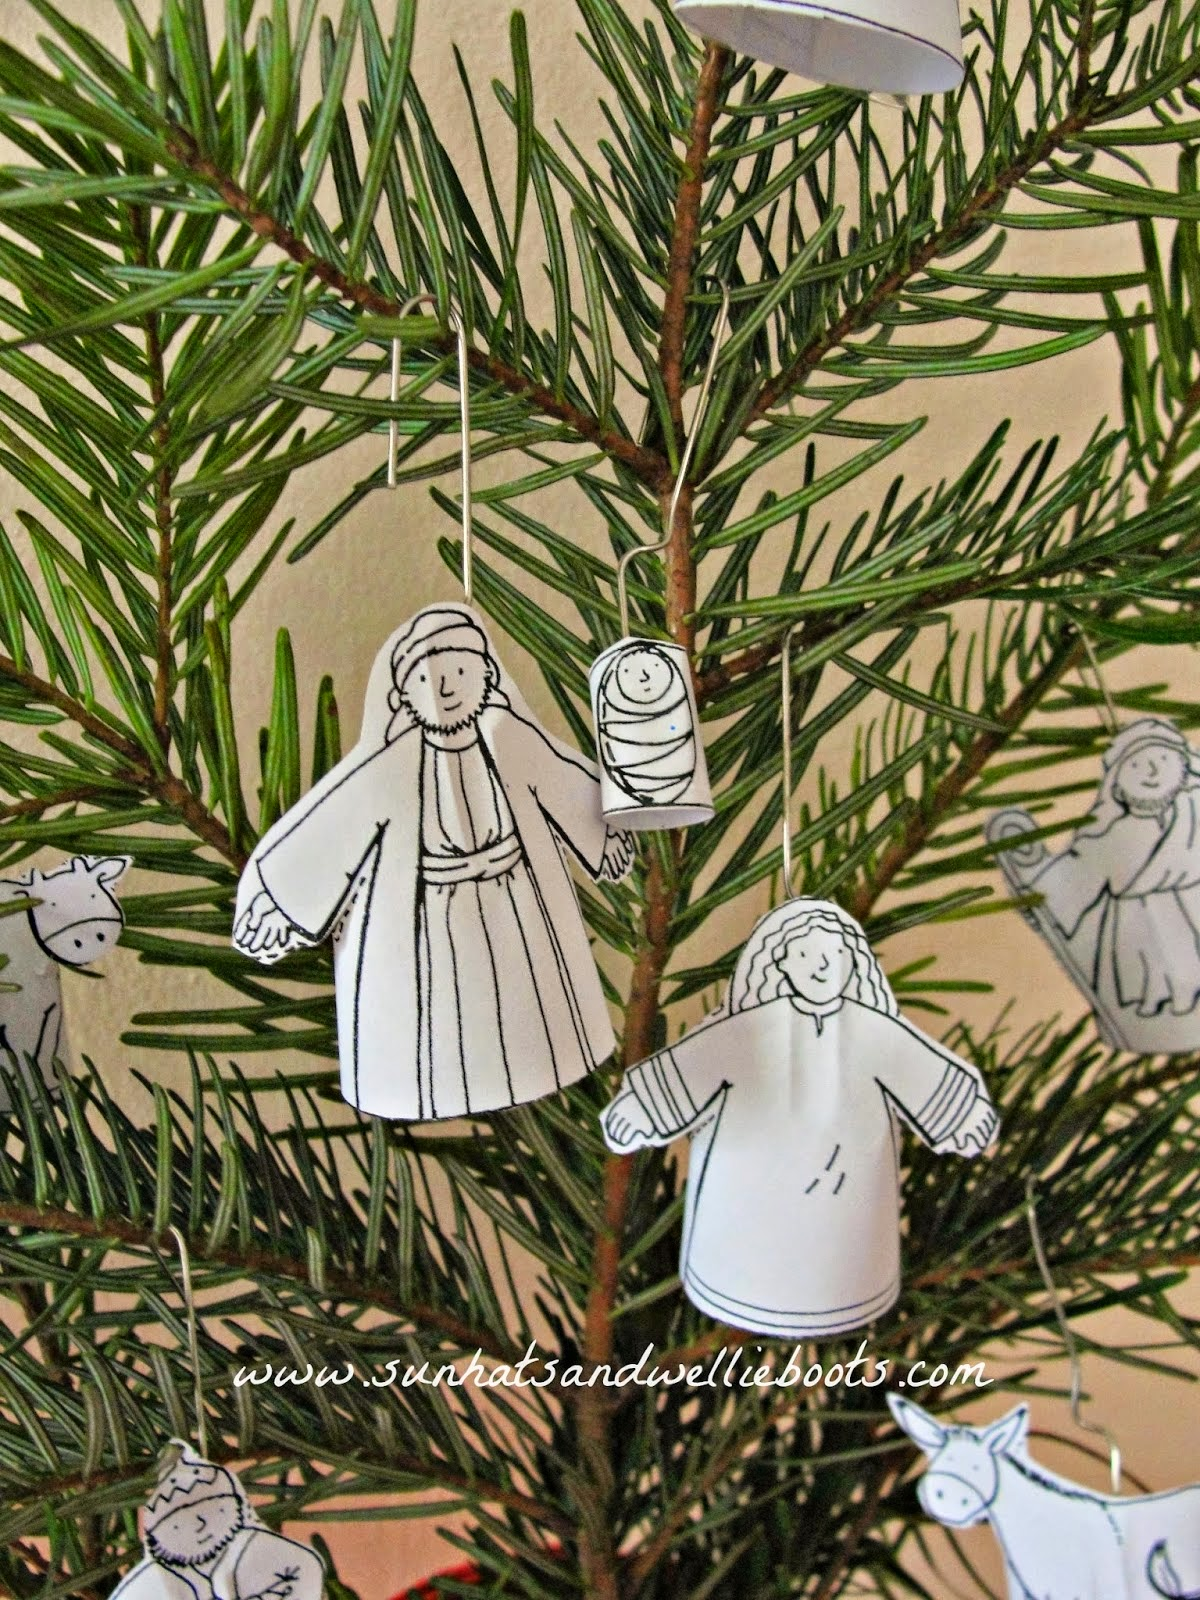 http://www.sunhatsandwellieboots.com/2013/12/make-your-own-nativity-tree.html